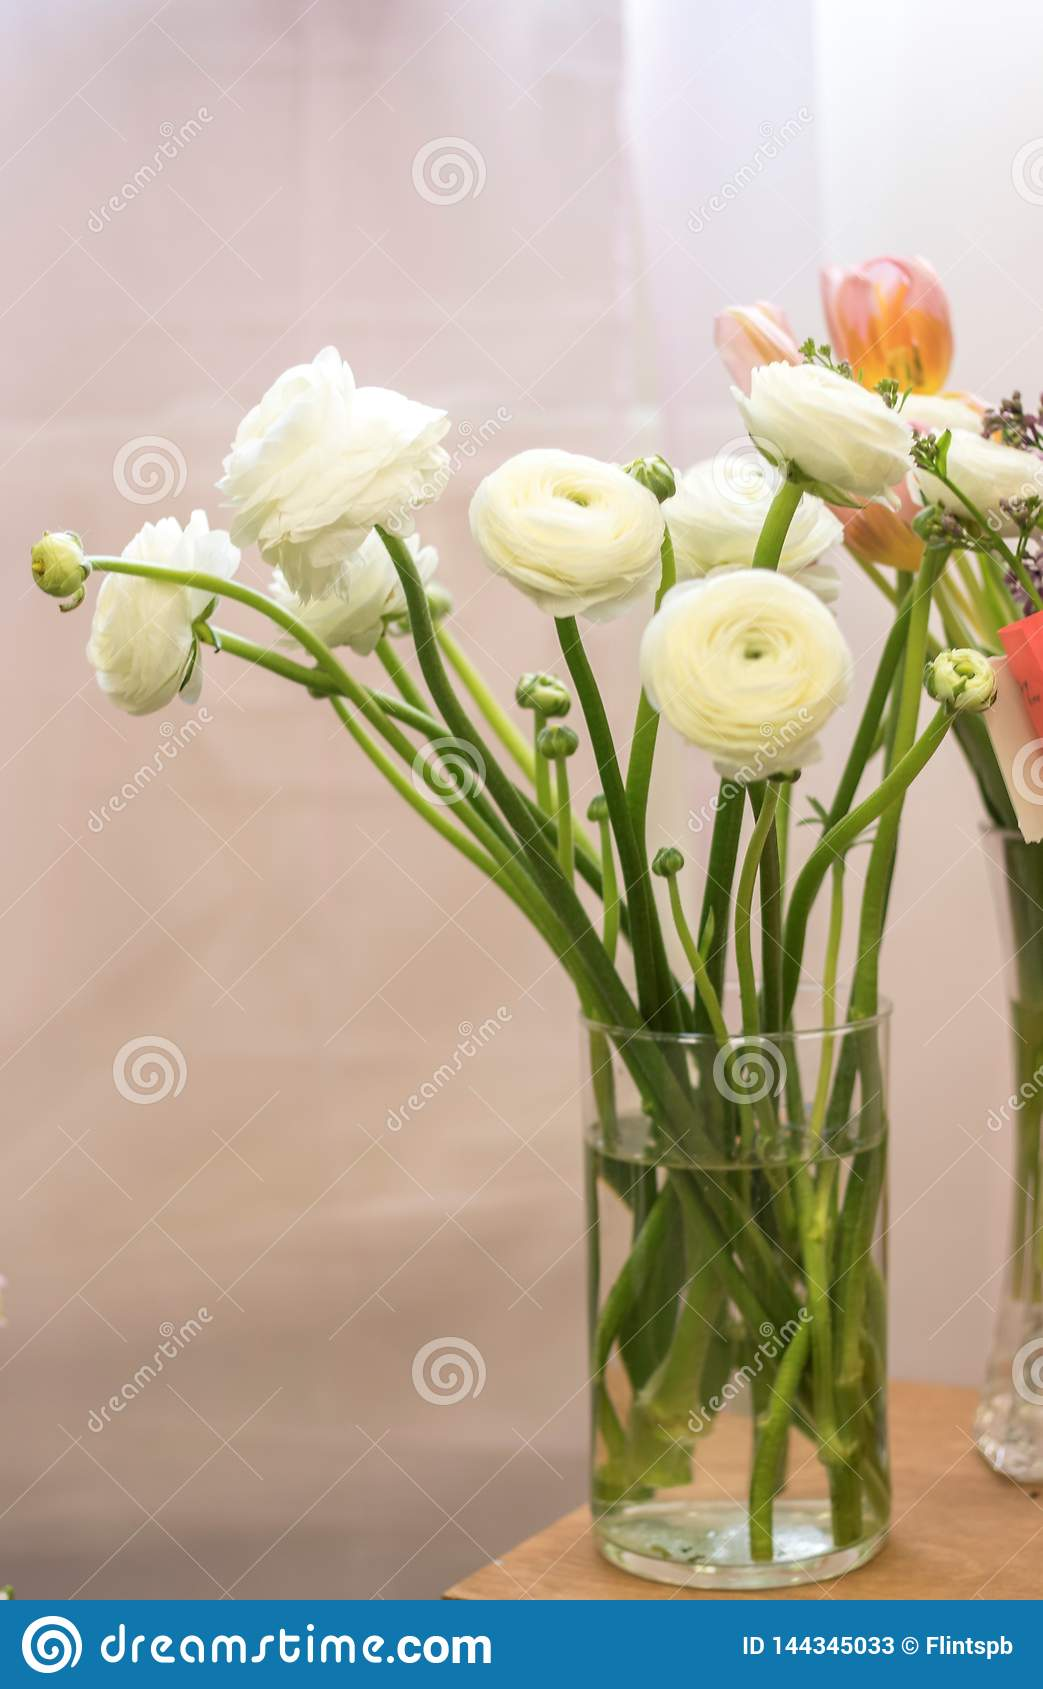 Bouquet in a vase of white buttercups